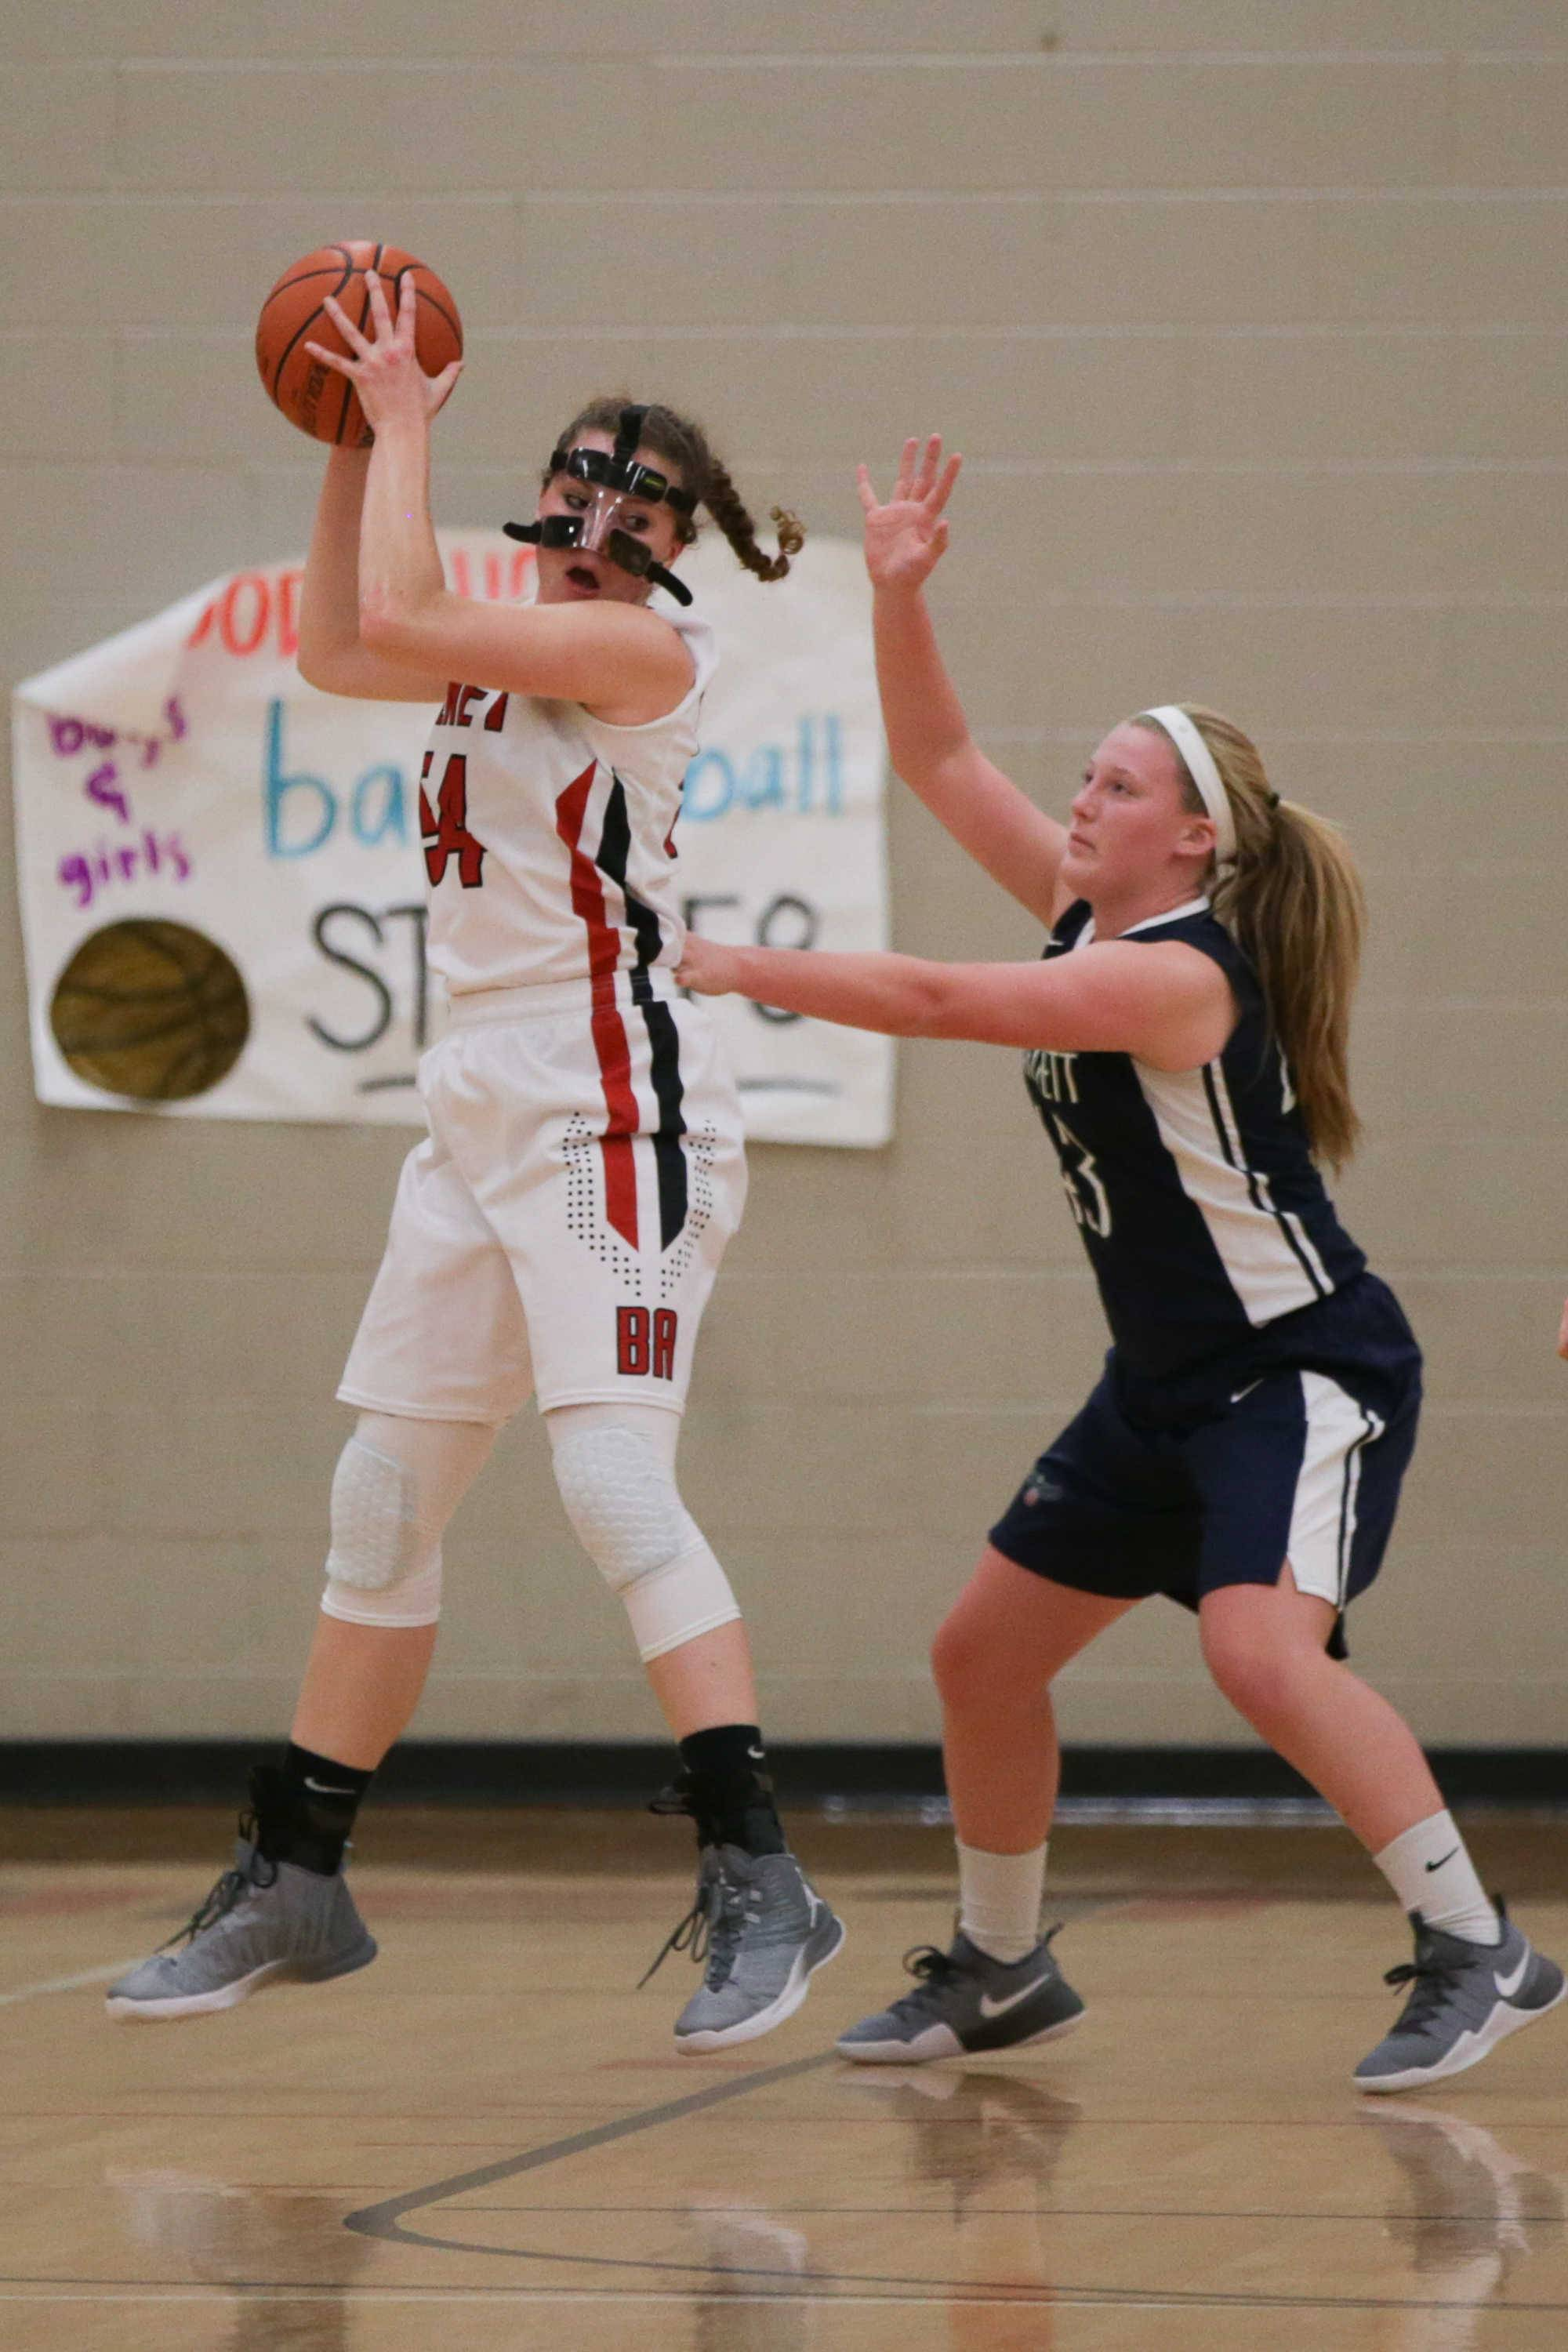 Benet center Katherine Jaseckas (54) plays the ball in the post against Bartlett Paige Bednarke (43) at Benet Academy in Lisle, IL on Friday, November 18, 2016